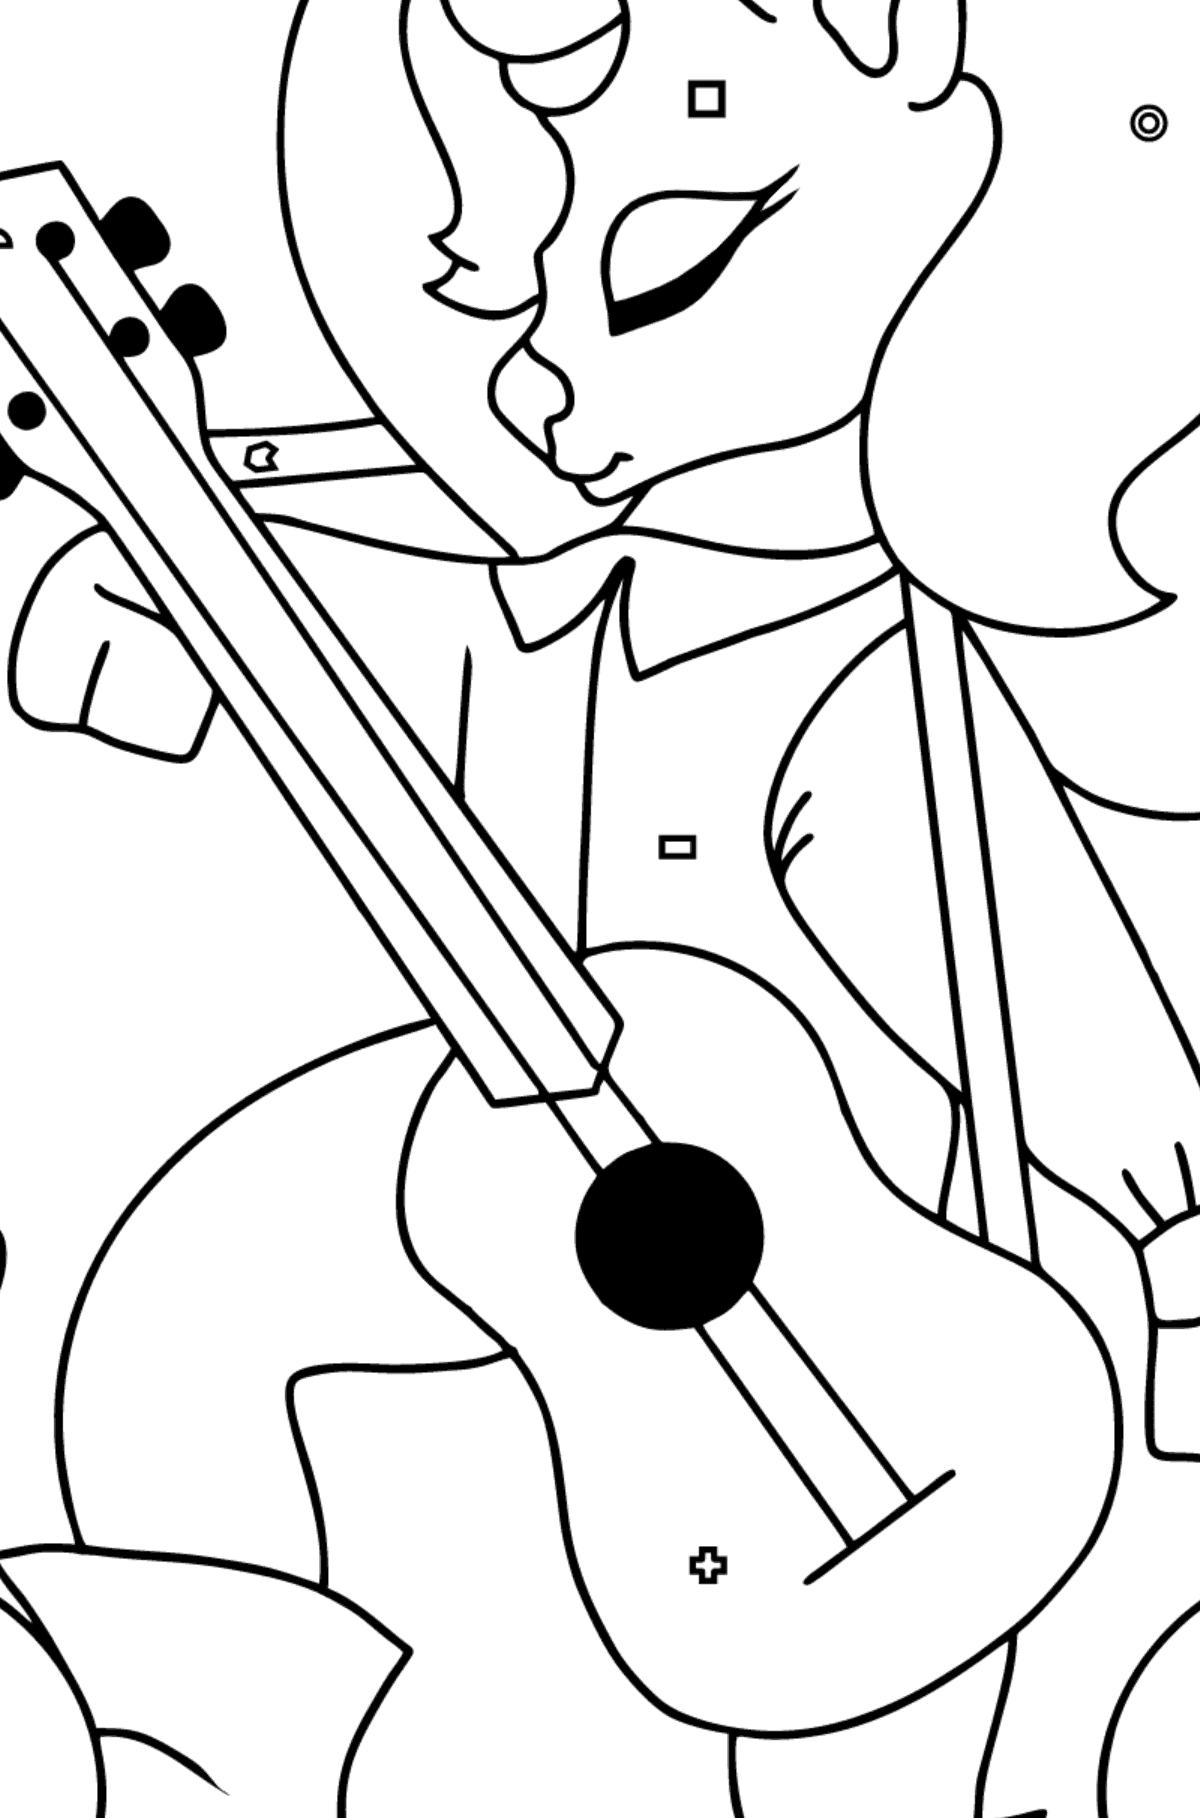 Simple Coloring Page - A Unicorn with a Guitar for Kids  - Color by Geometric Shapes